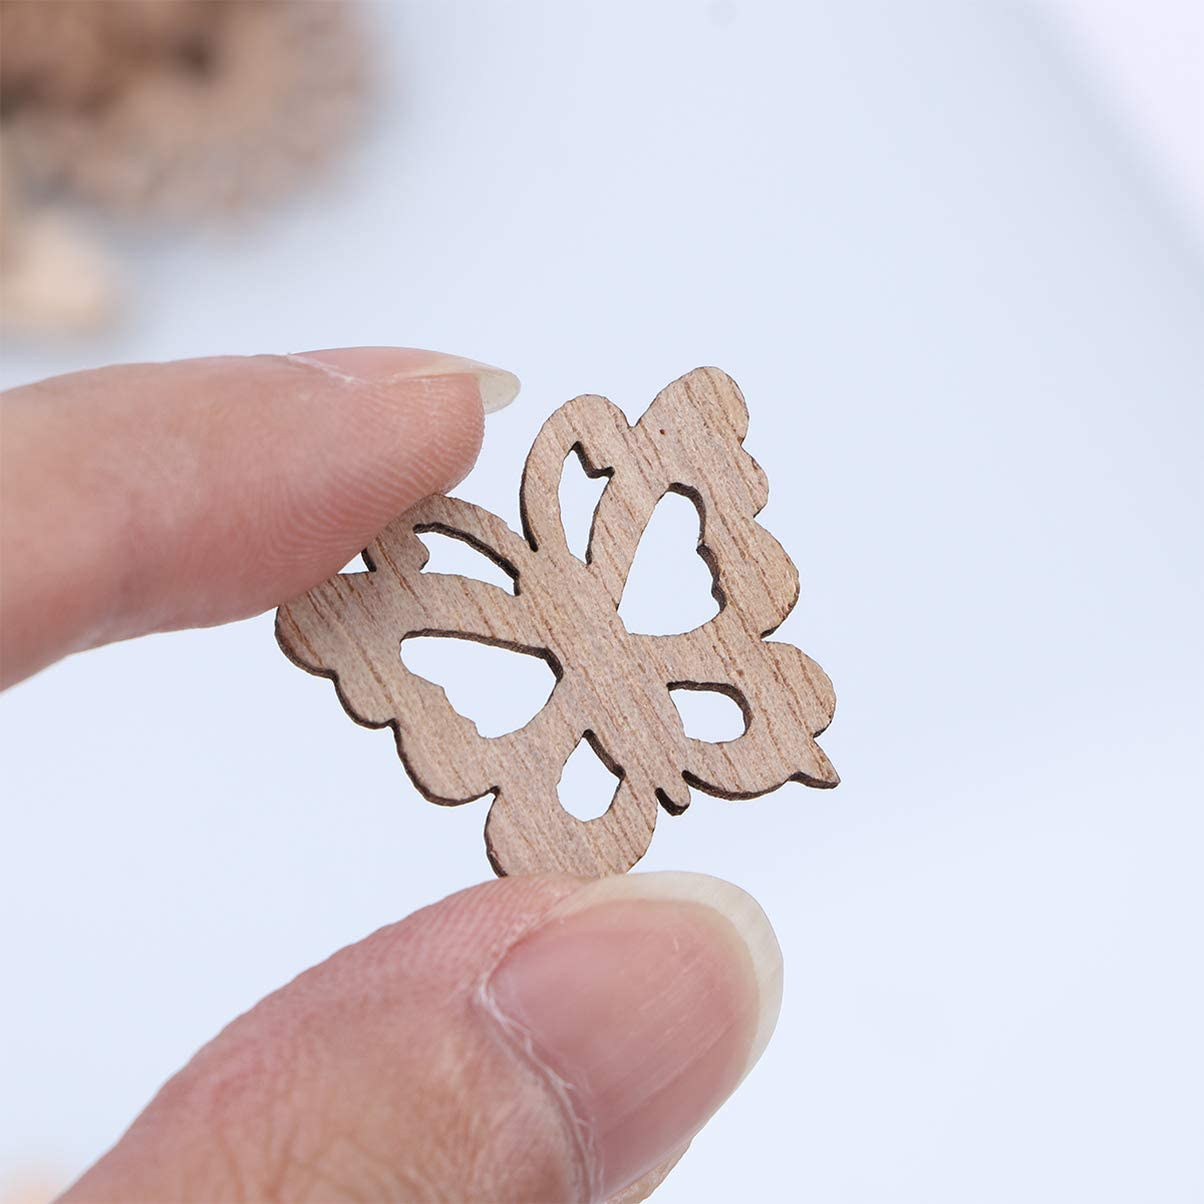 Happyyami 100pcs Unfinished Wood Cutouts Wooden Flower Butterfly Bird Embellishments Table Confetti Rustic Wedding Decorations DIY Wood Craft Supplies